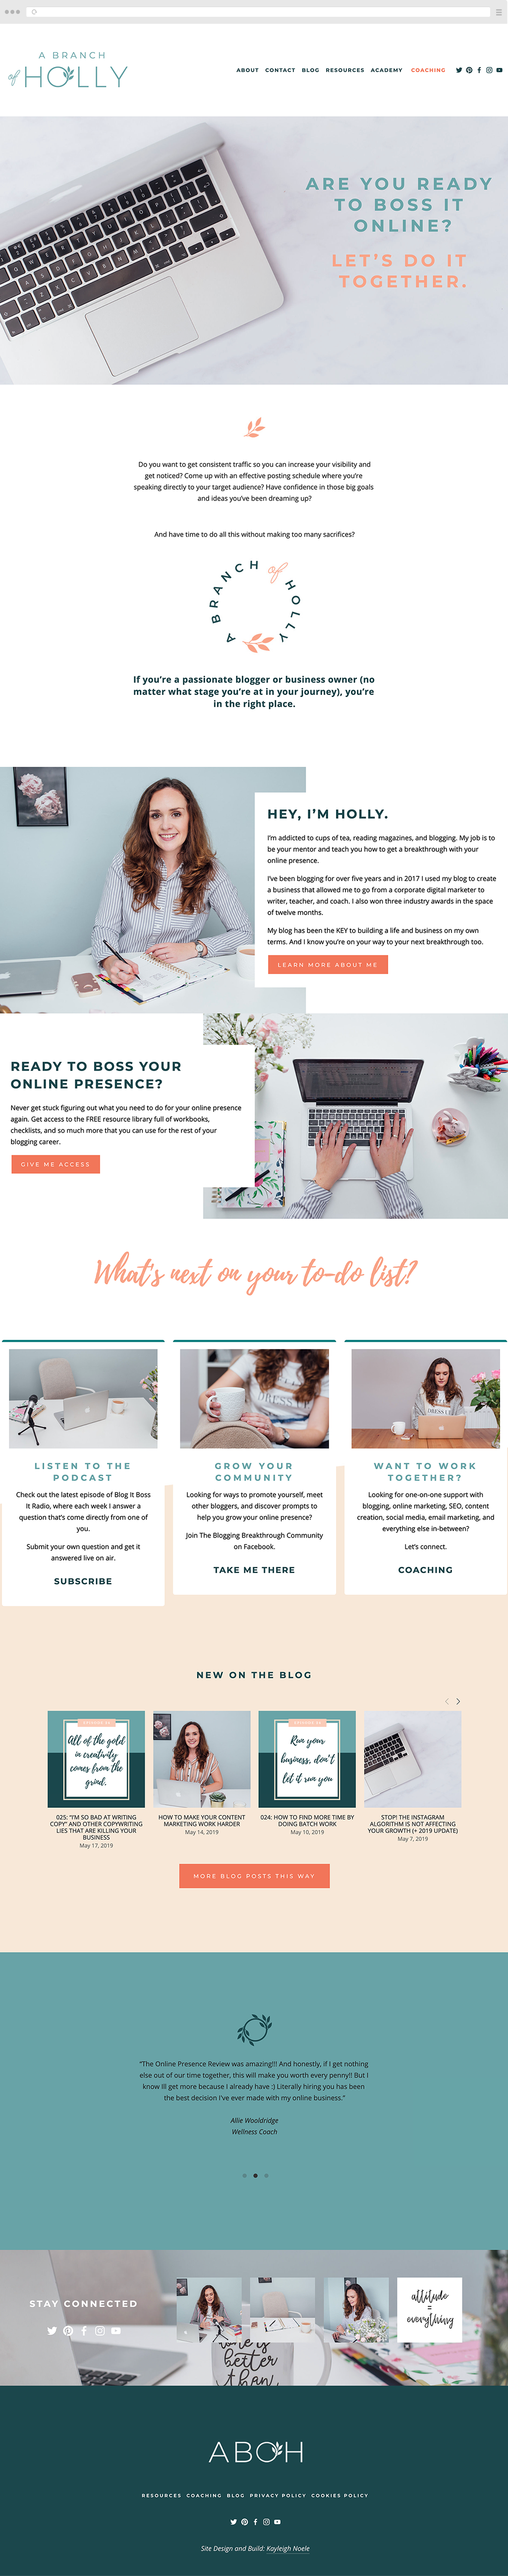 Squarespace Web Design Inspiration A Branch Of Holly Online Business And Blogging Co In 2020 Squarespace Web Design Portfolio Web Design Squarespace Website Design